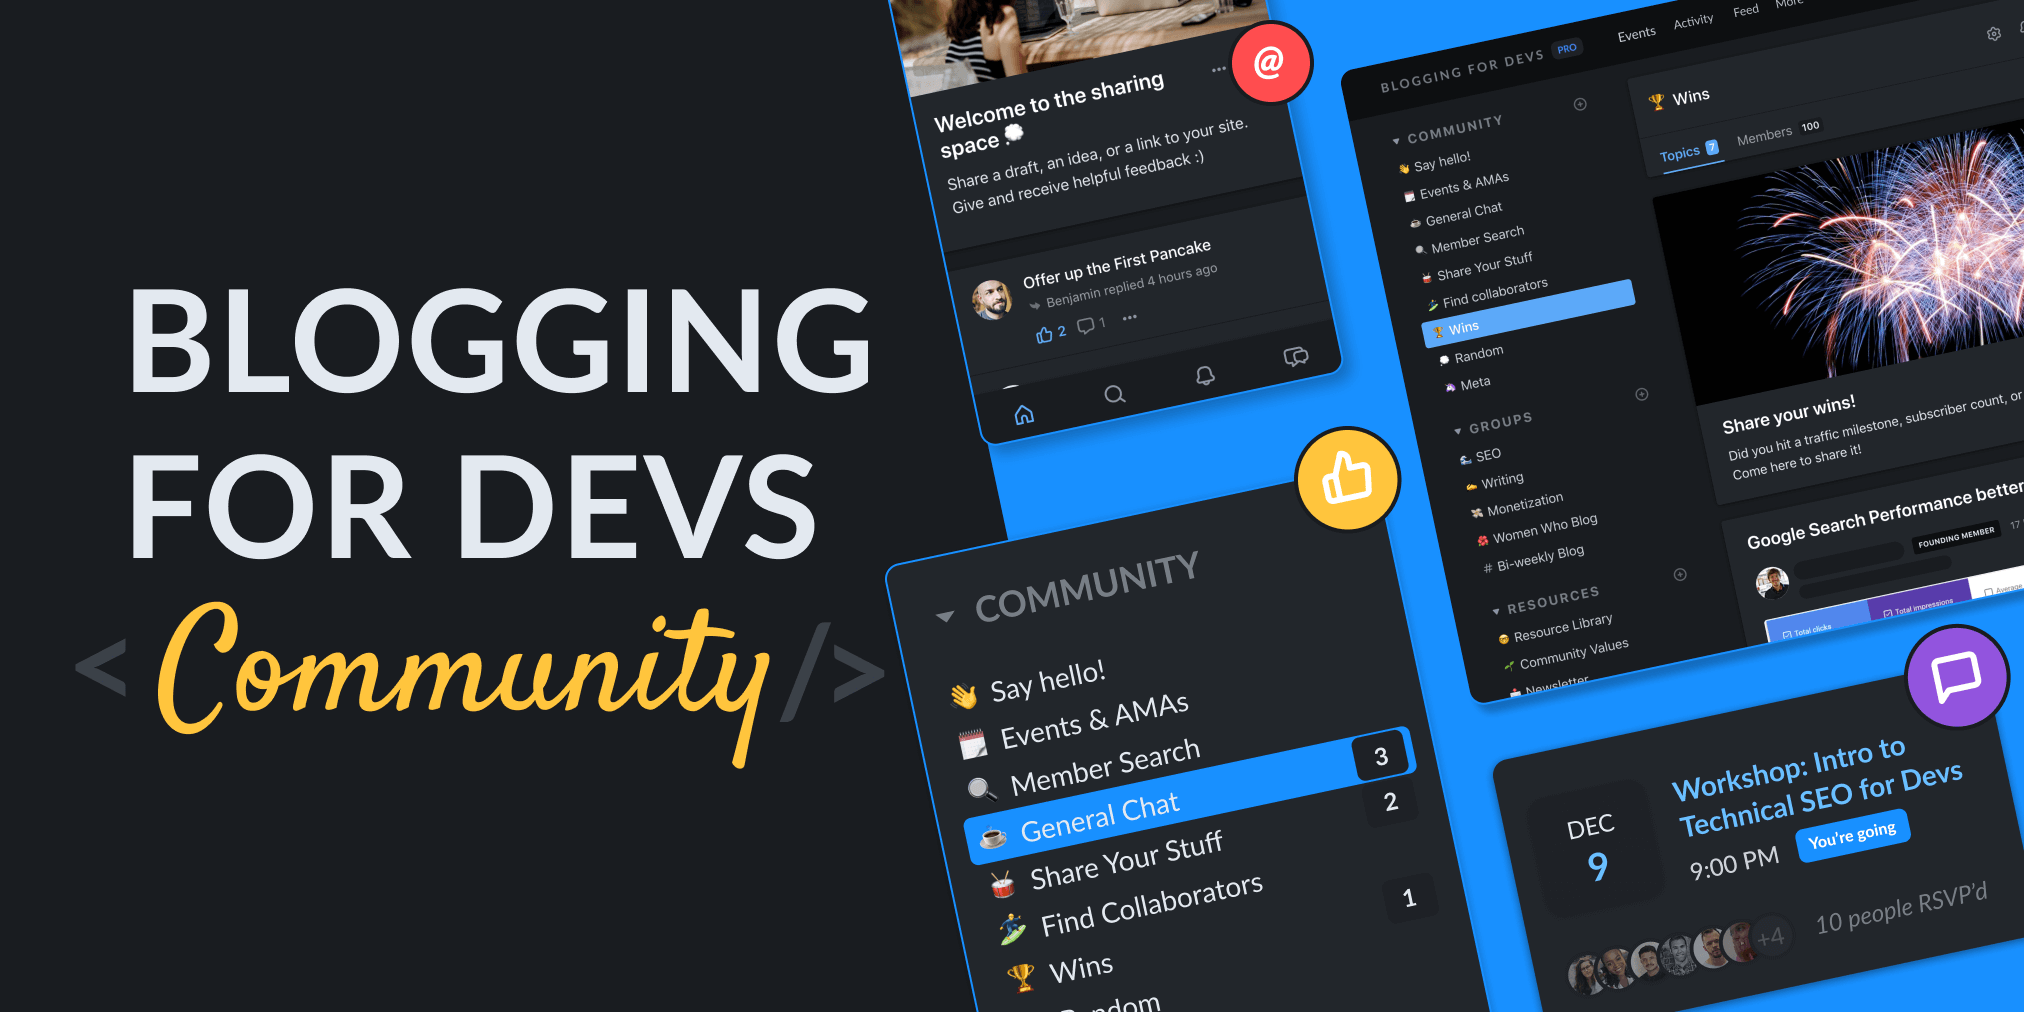 Blogging for Devs Pro Community